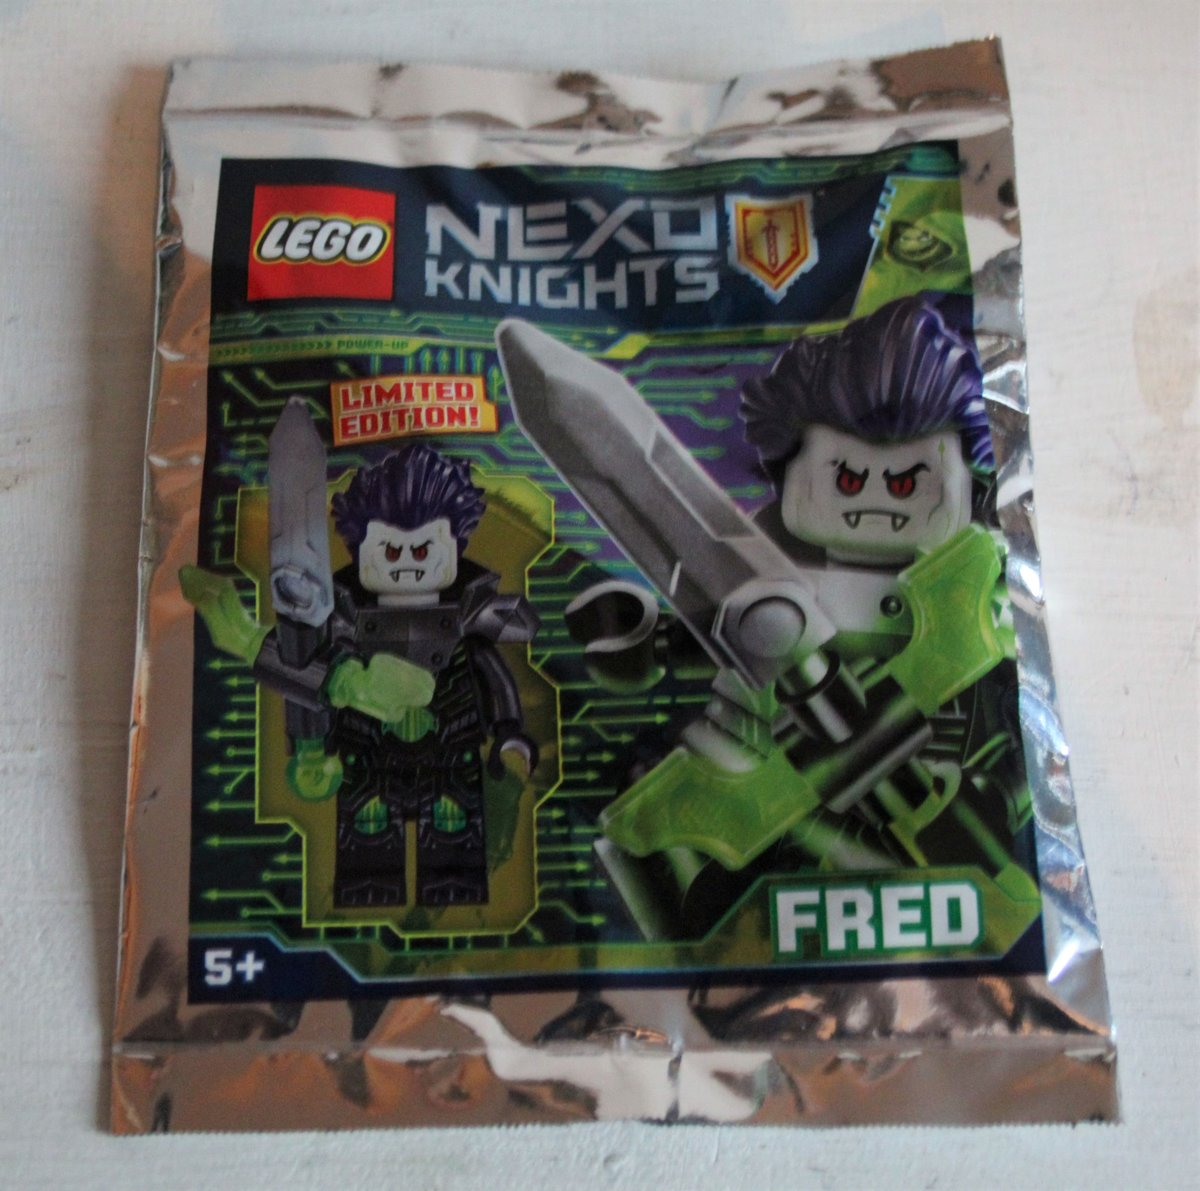 Lego Nexo Knights Minifigure - FRED (polybag)